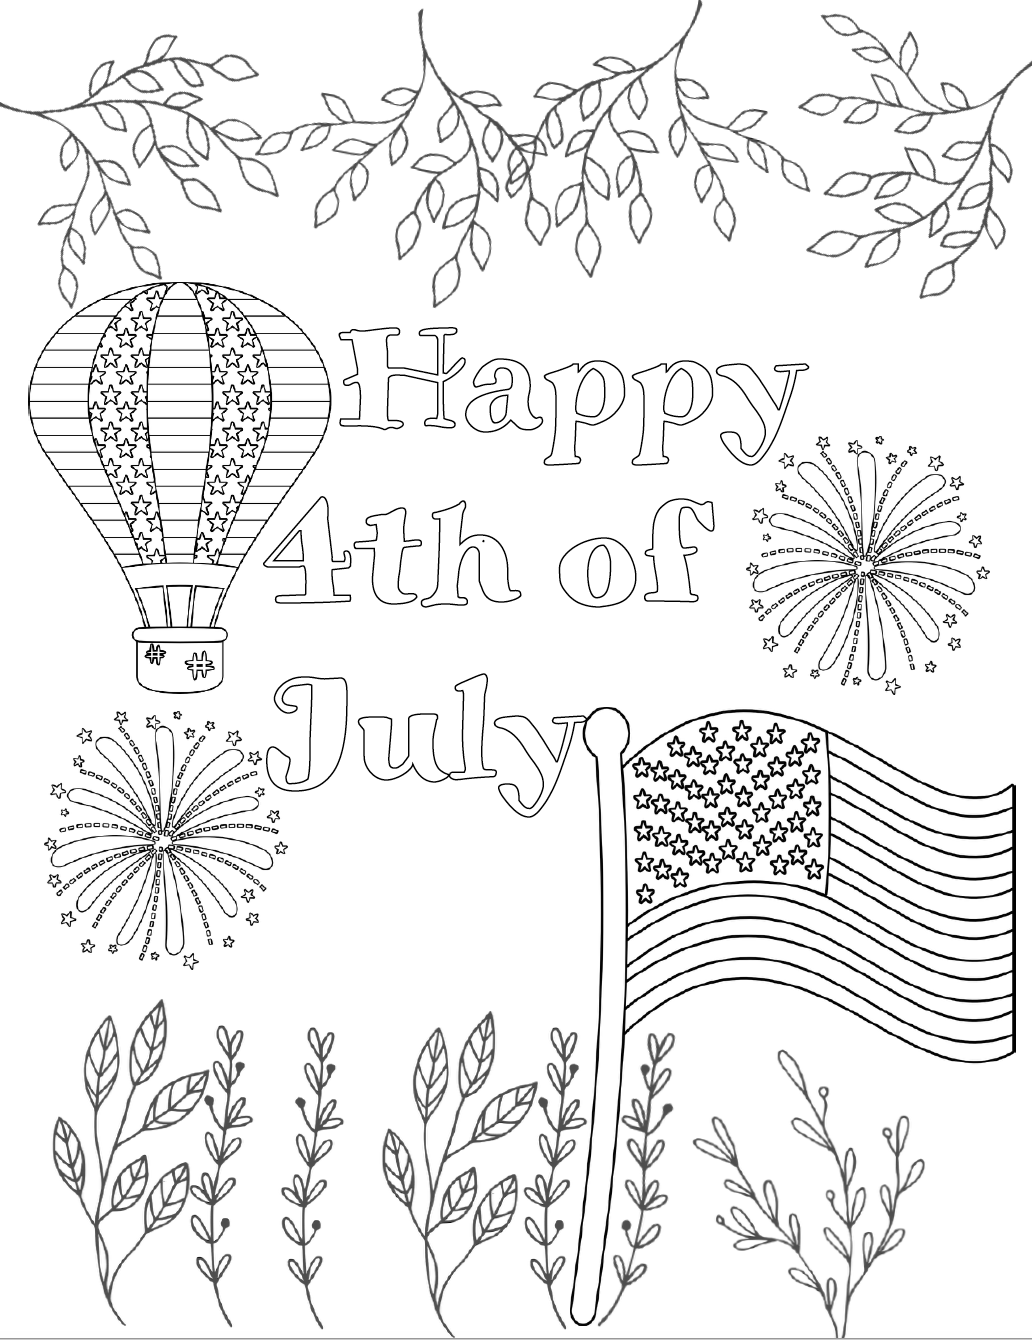 photo regarding July 4th Coloring Pages Printable named Free of charge Printable Fourth of July Coloring Web pages: 4 Ideas